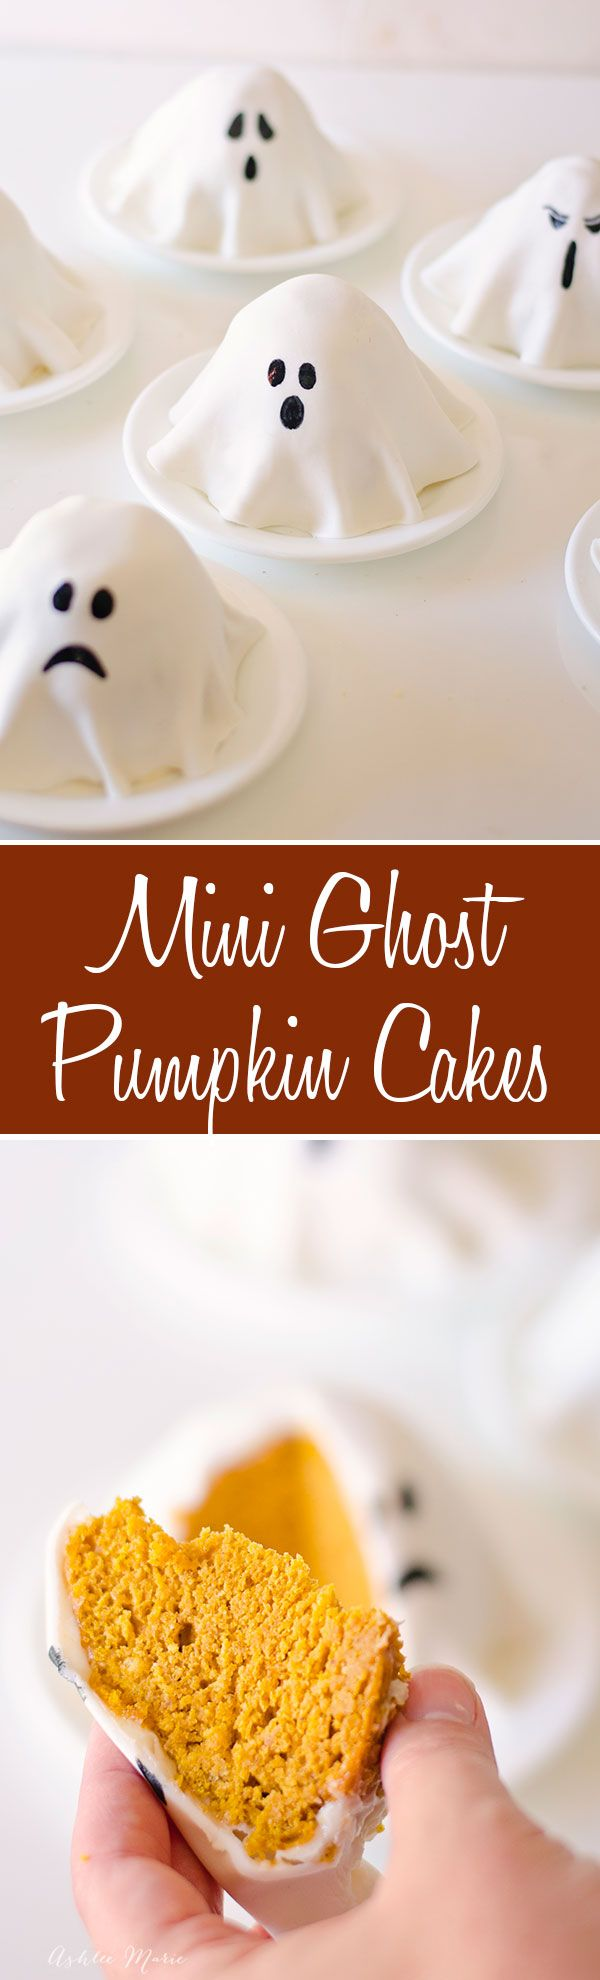 easy to make and adorable these mini ghost cakes are a huge hit with everyone